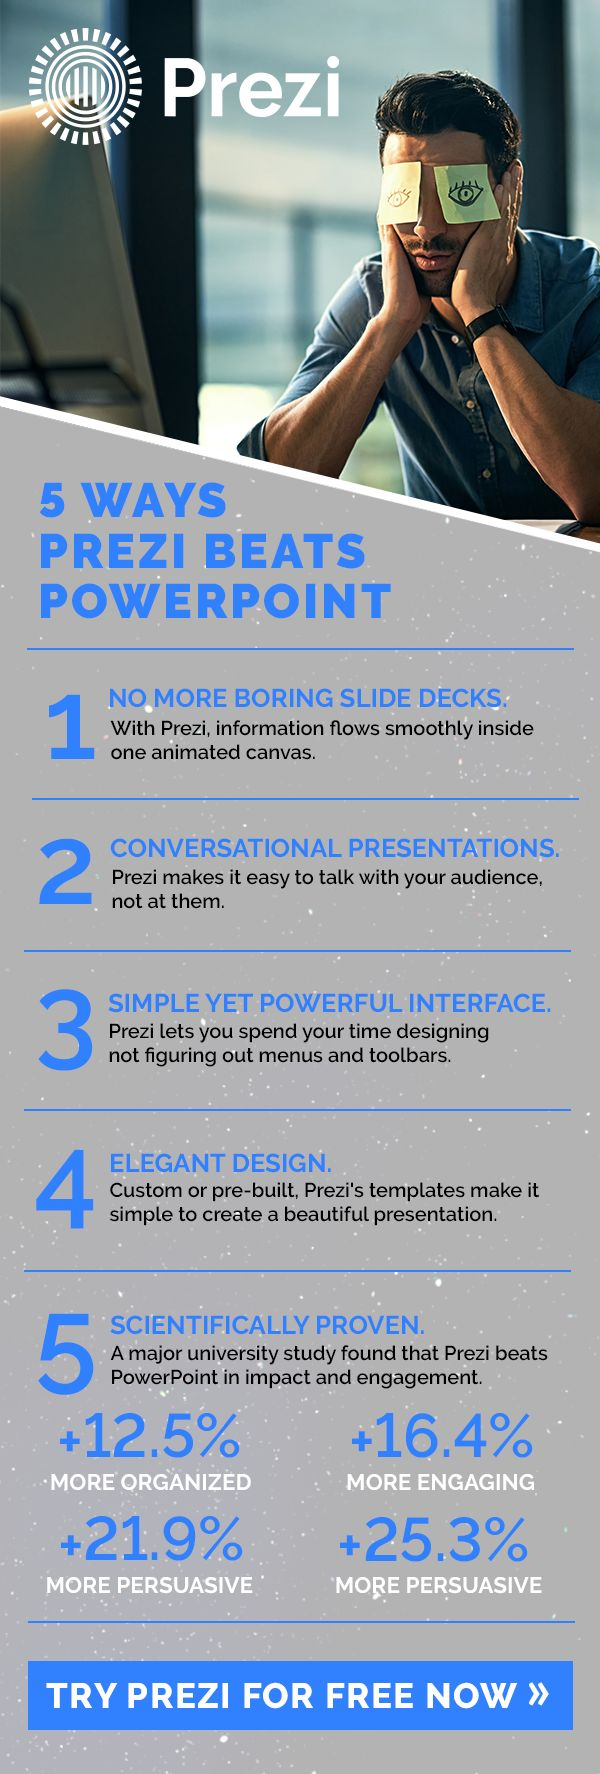 See ya later, PowerPoint! With features like custom template designs, fluid motion and a simple yet powerful interface, Prezi helps you impact your audience in ways other software can't. Check out these five ways Prezi is scientifically proven to leave PowerPoint in the dust -- sign up today to start your free two-week trial!